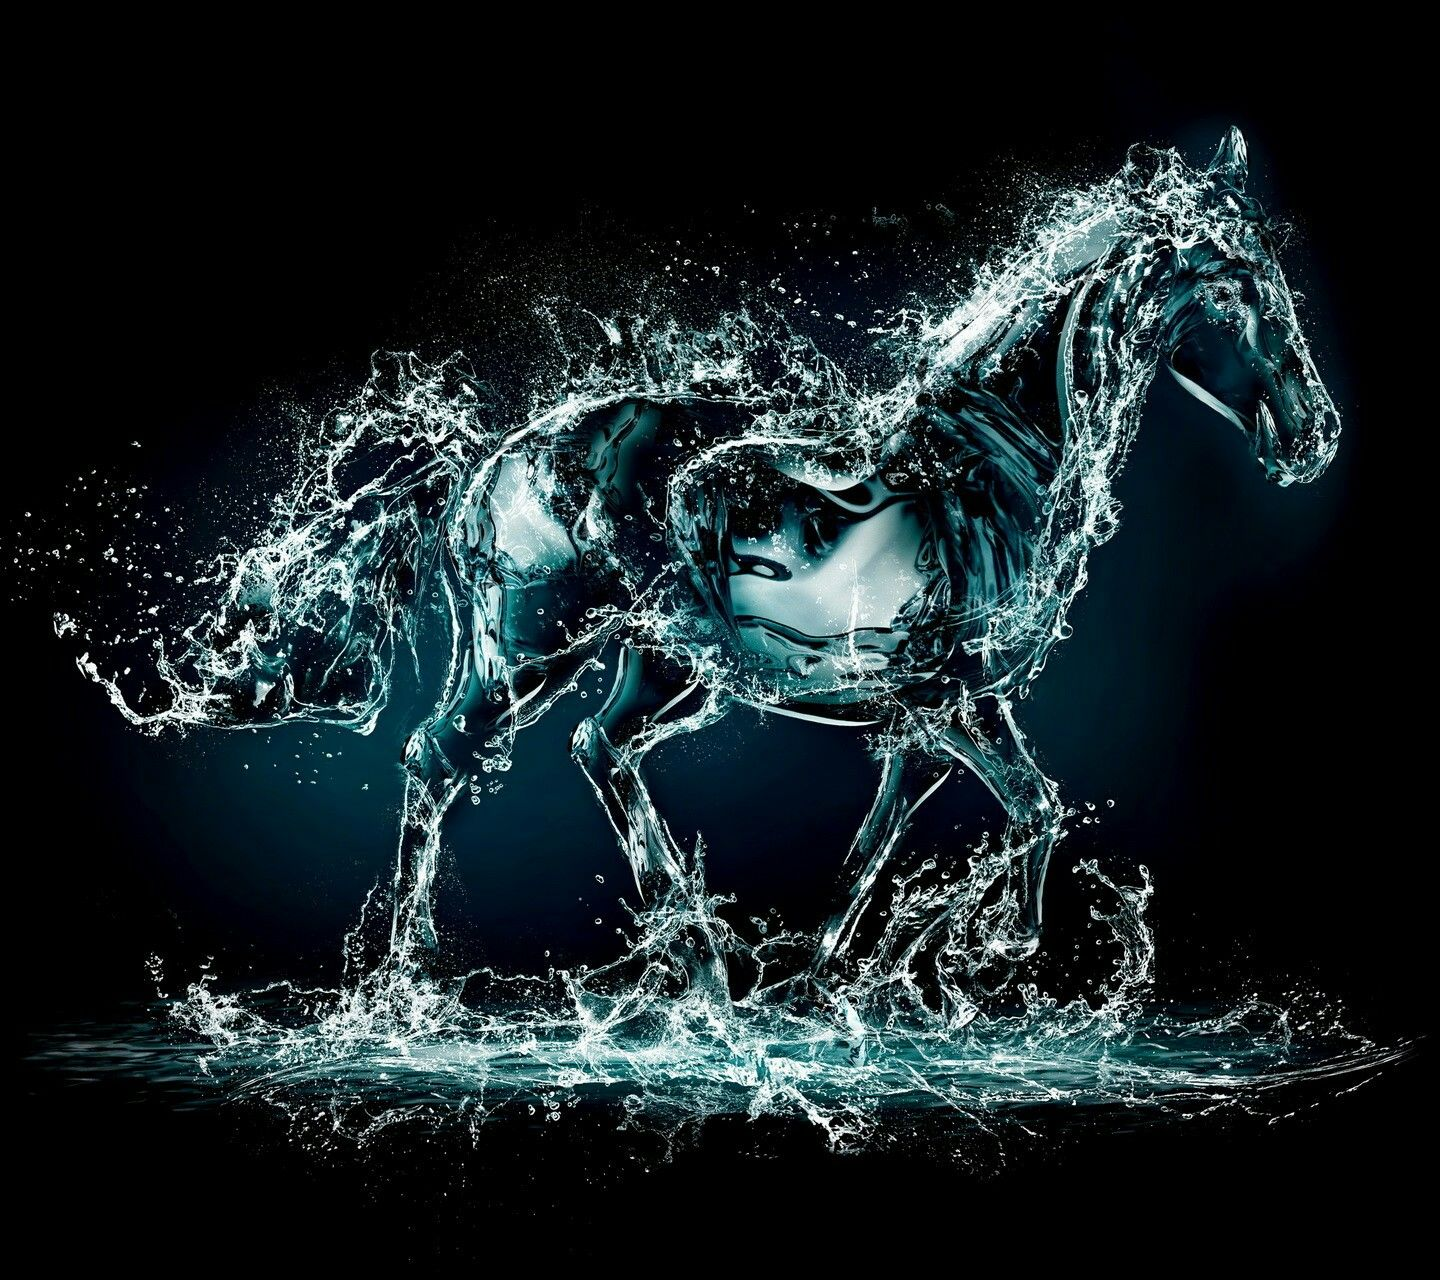 Must see Wallpaper Horse Abstract - 6269bd4c6569e90df73475699c6827d3  Collection_197766.jpg